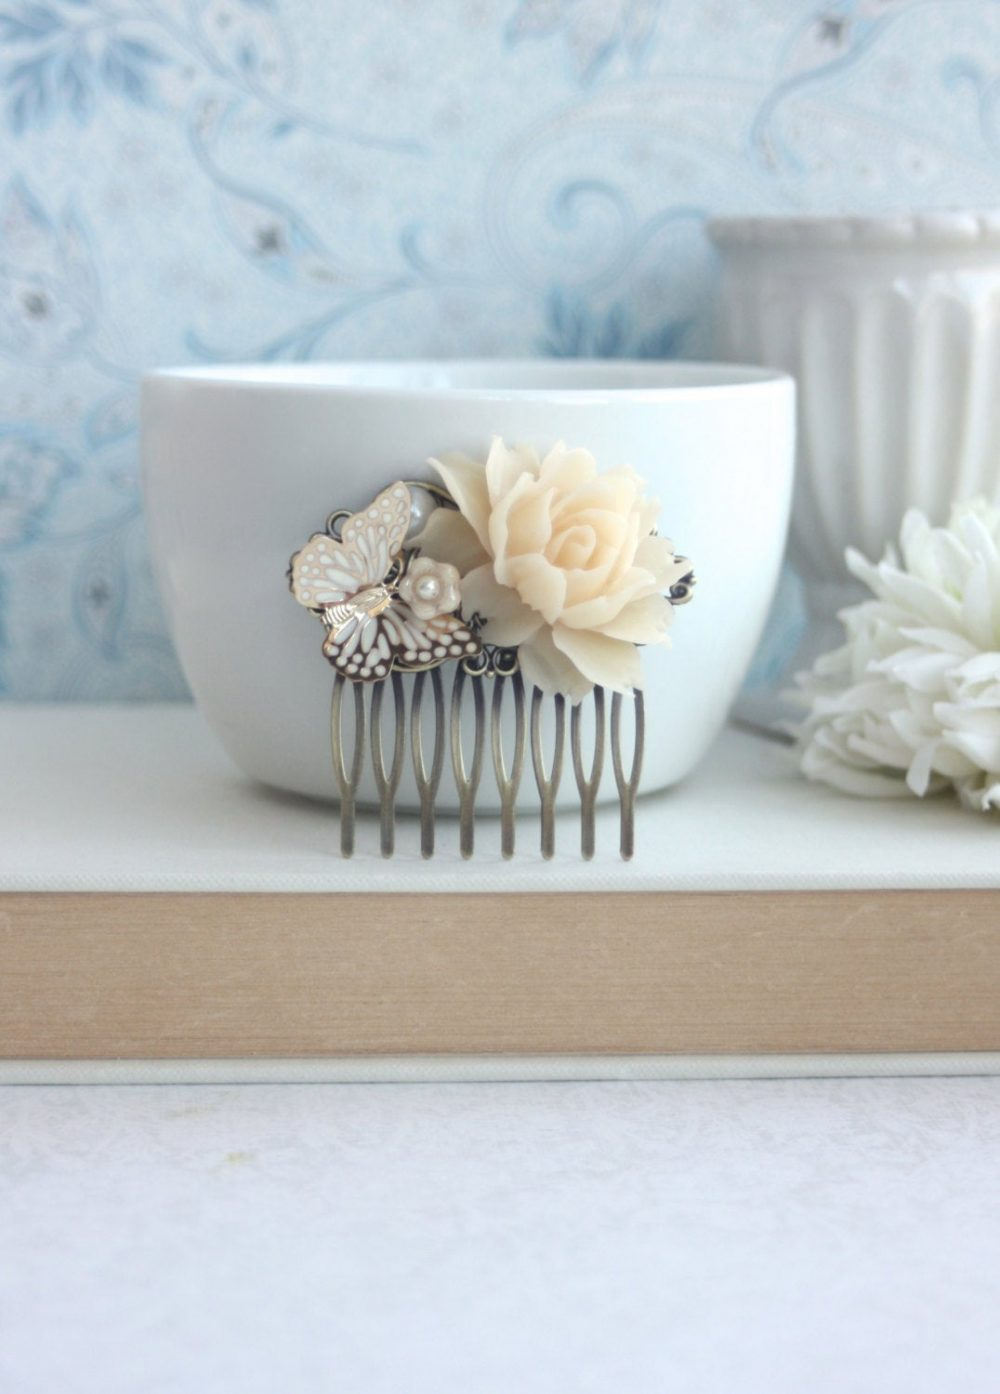 Ivory Rose Flower Butterfly Hair Comb. Floral Rustic Clip. Bridal Wedding Hair, Vintage Inspired. Bridesmaids Gift. Summer Garden